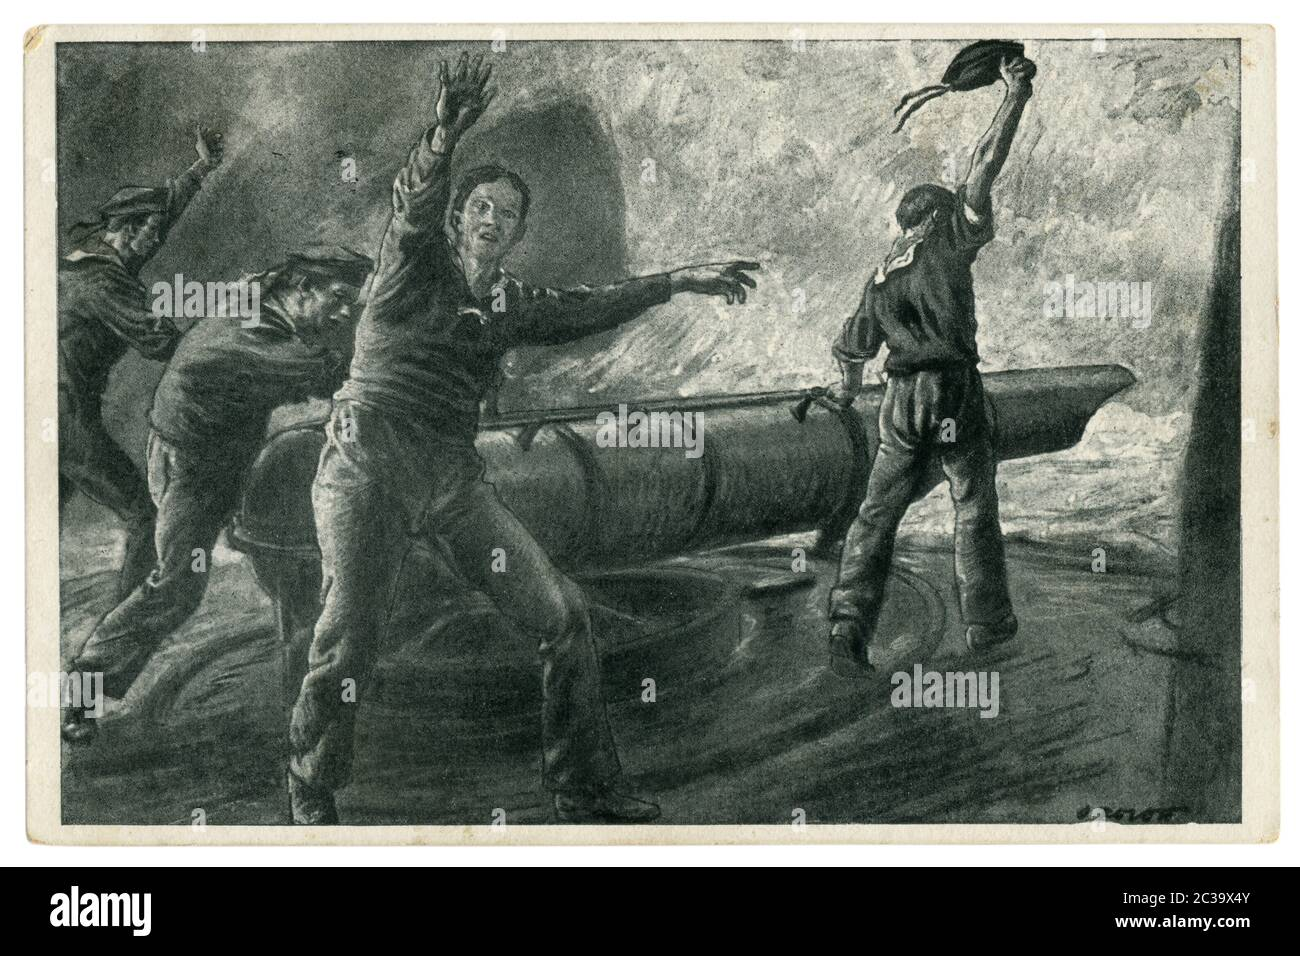 German historical postcard: Navy sailors on Board a warship at the torpedo tube to launch a torpedo. Sea battle, world war one 1914-1918. Germany Stock Photo